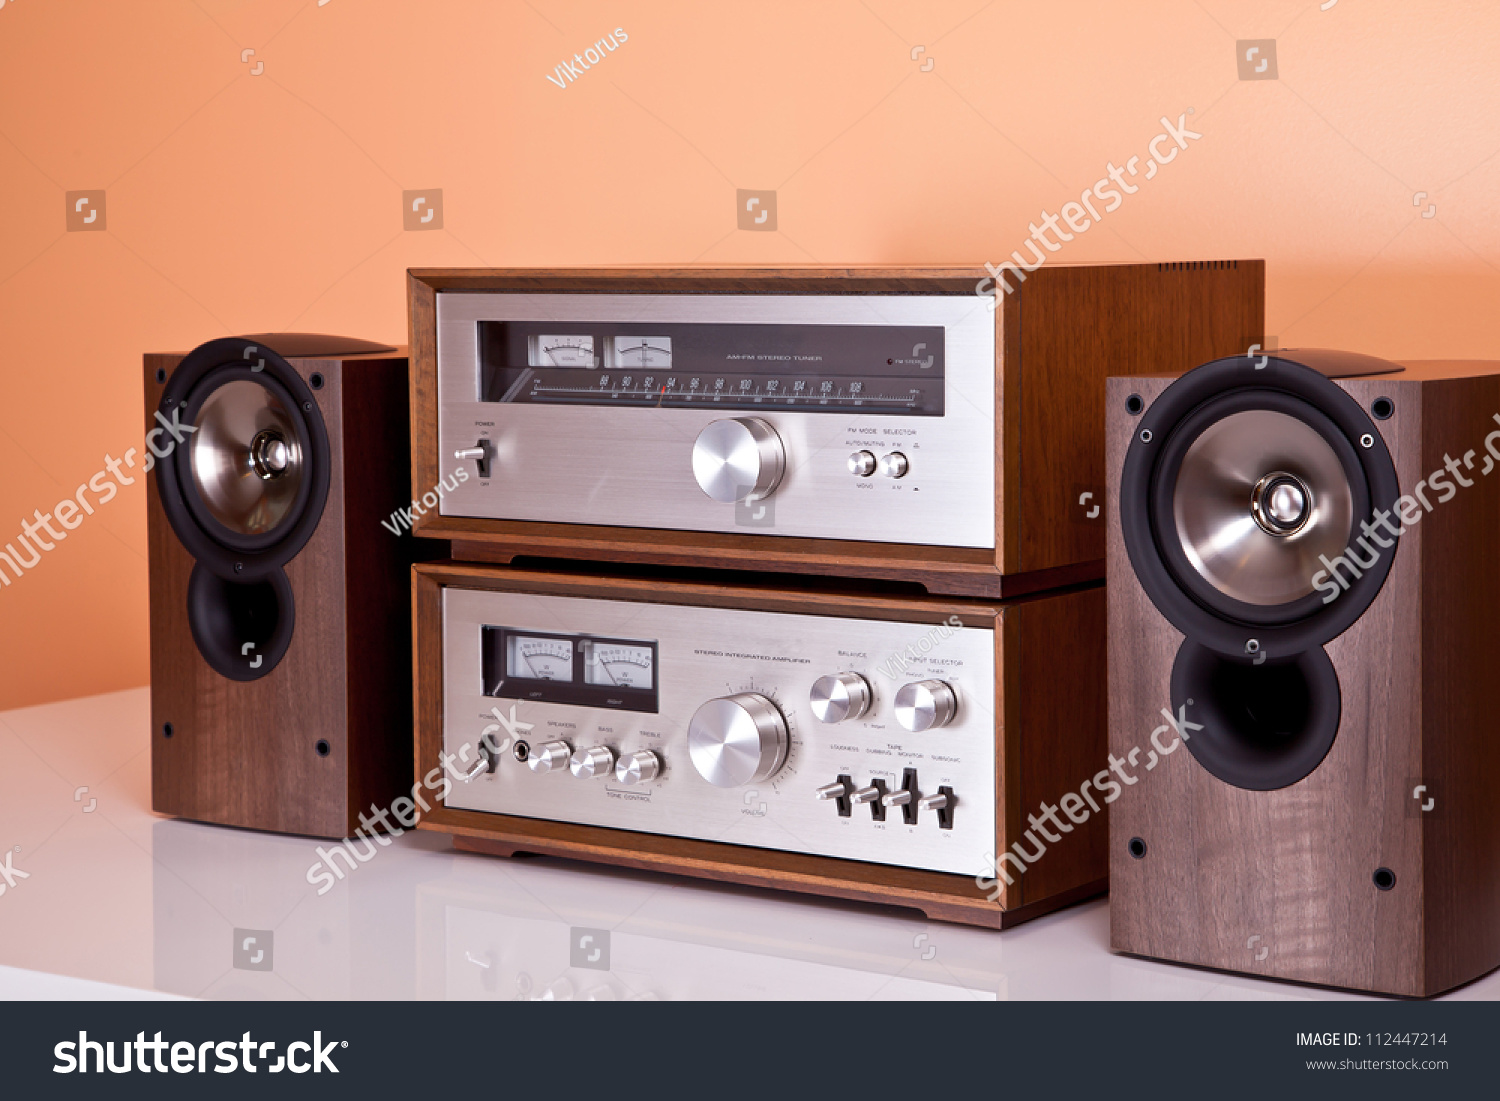 Vintage Hifi Stereo Amplifier Tuner Speakers Stock Photo 112447214 ...